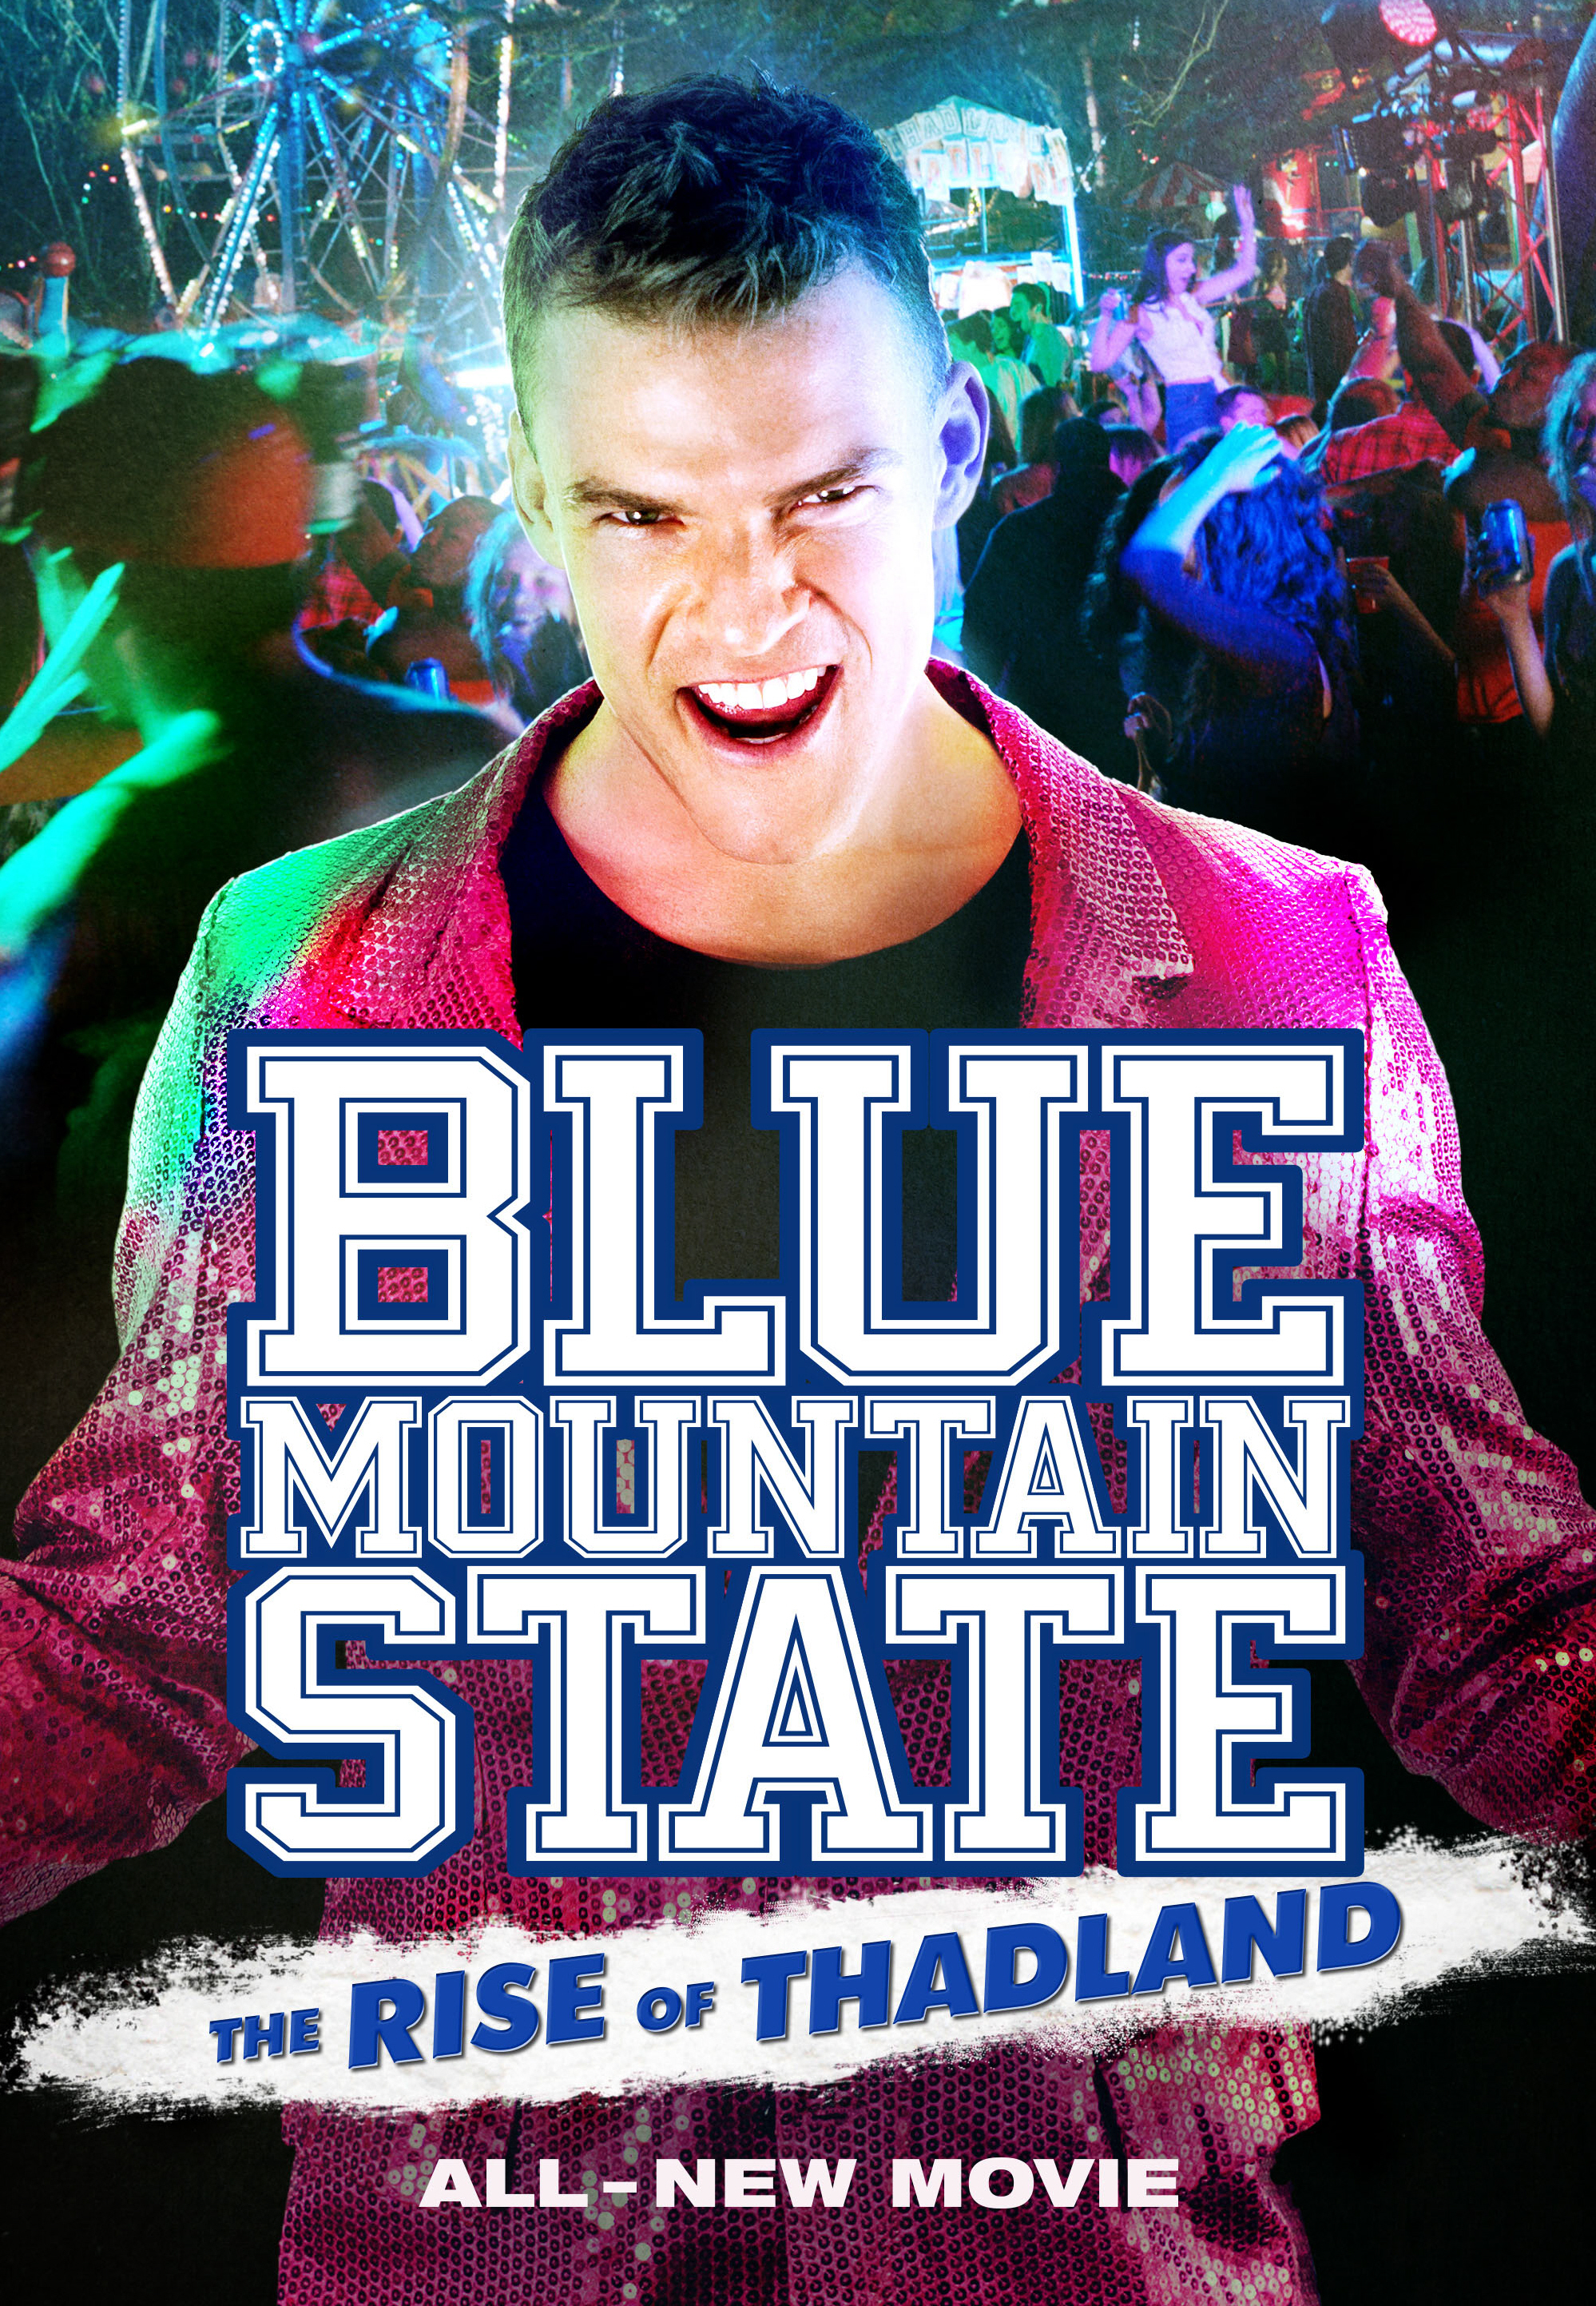 Watch Movies Similar to Blue Mountain State: The Rise of Thadland